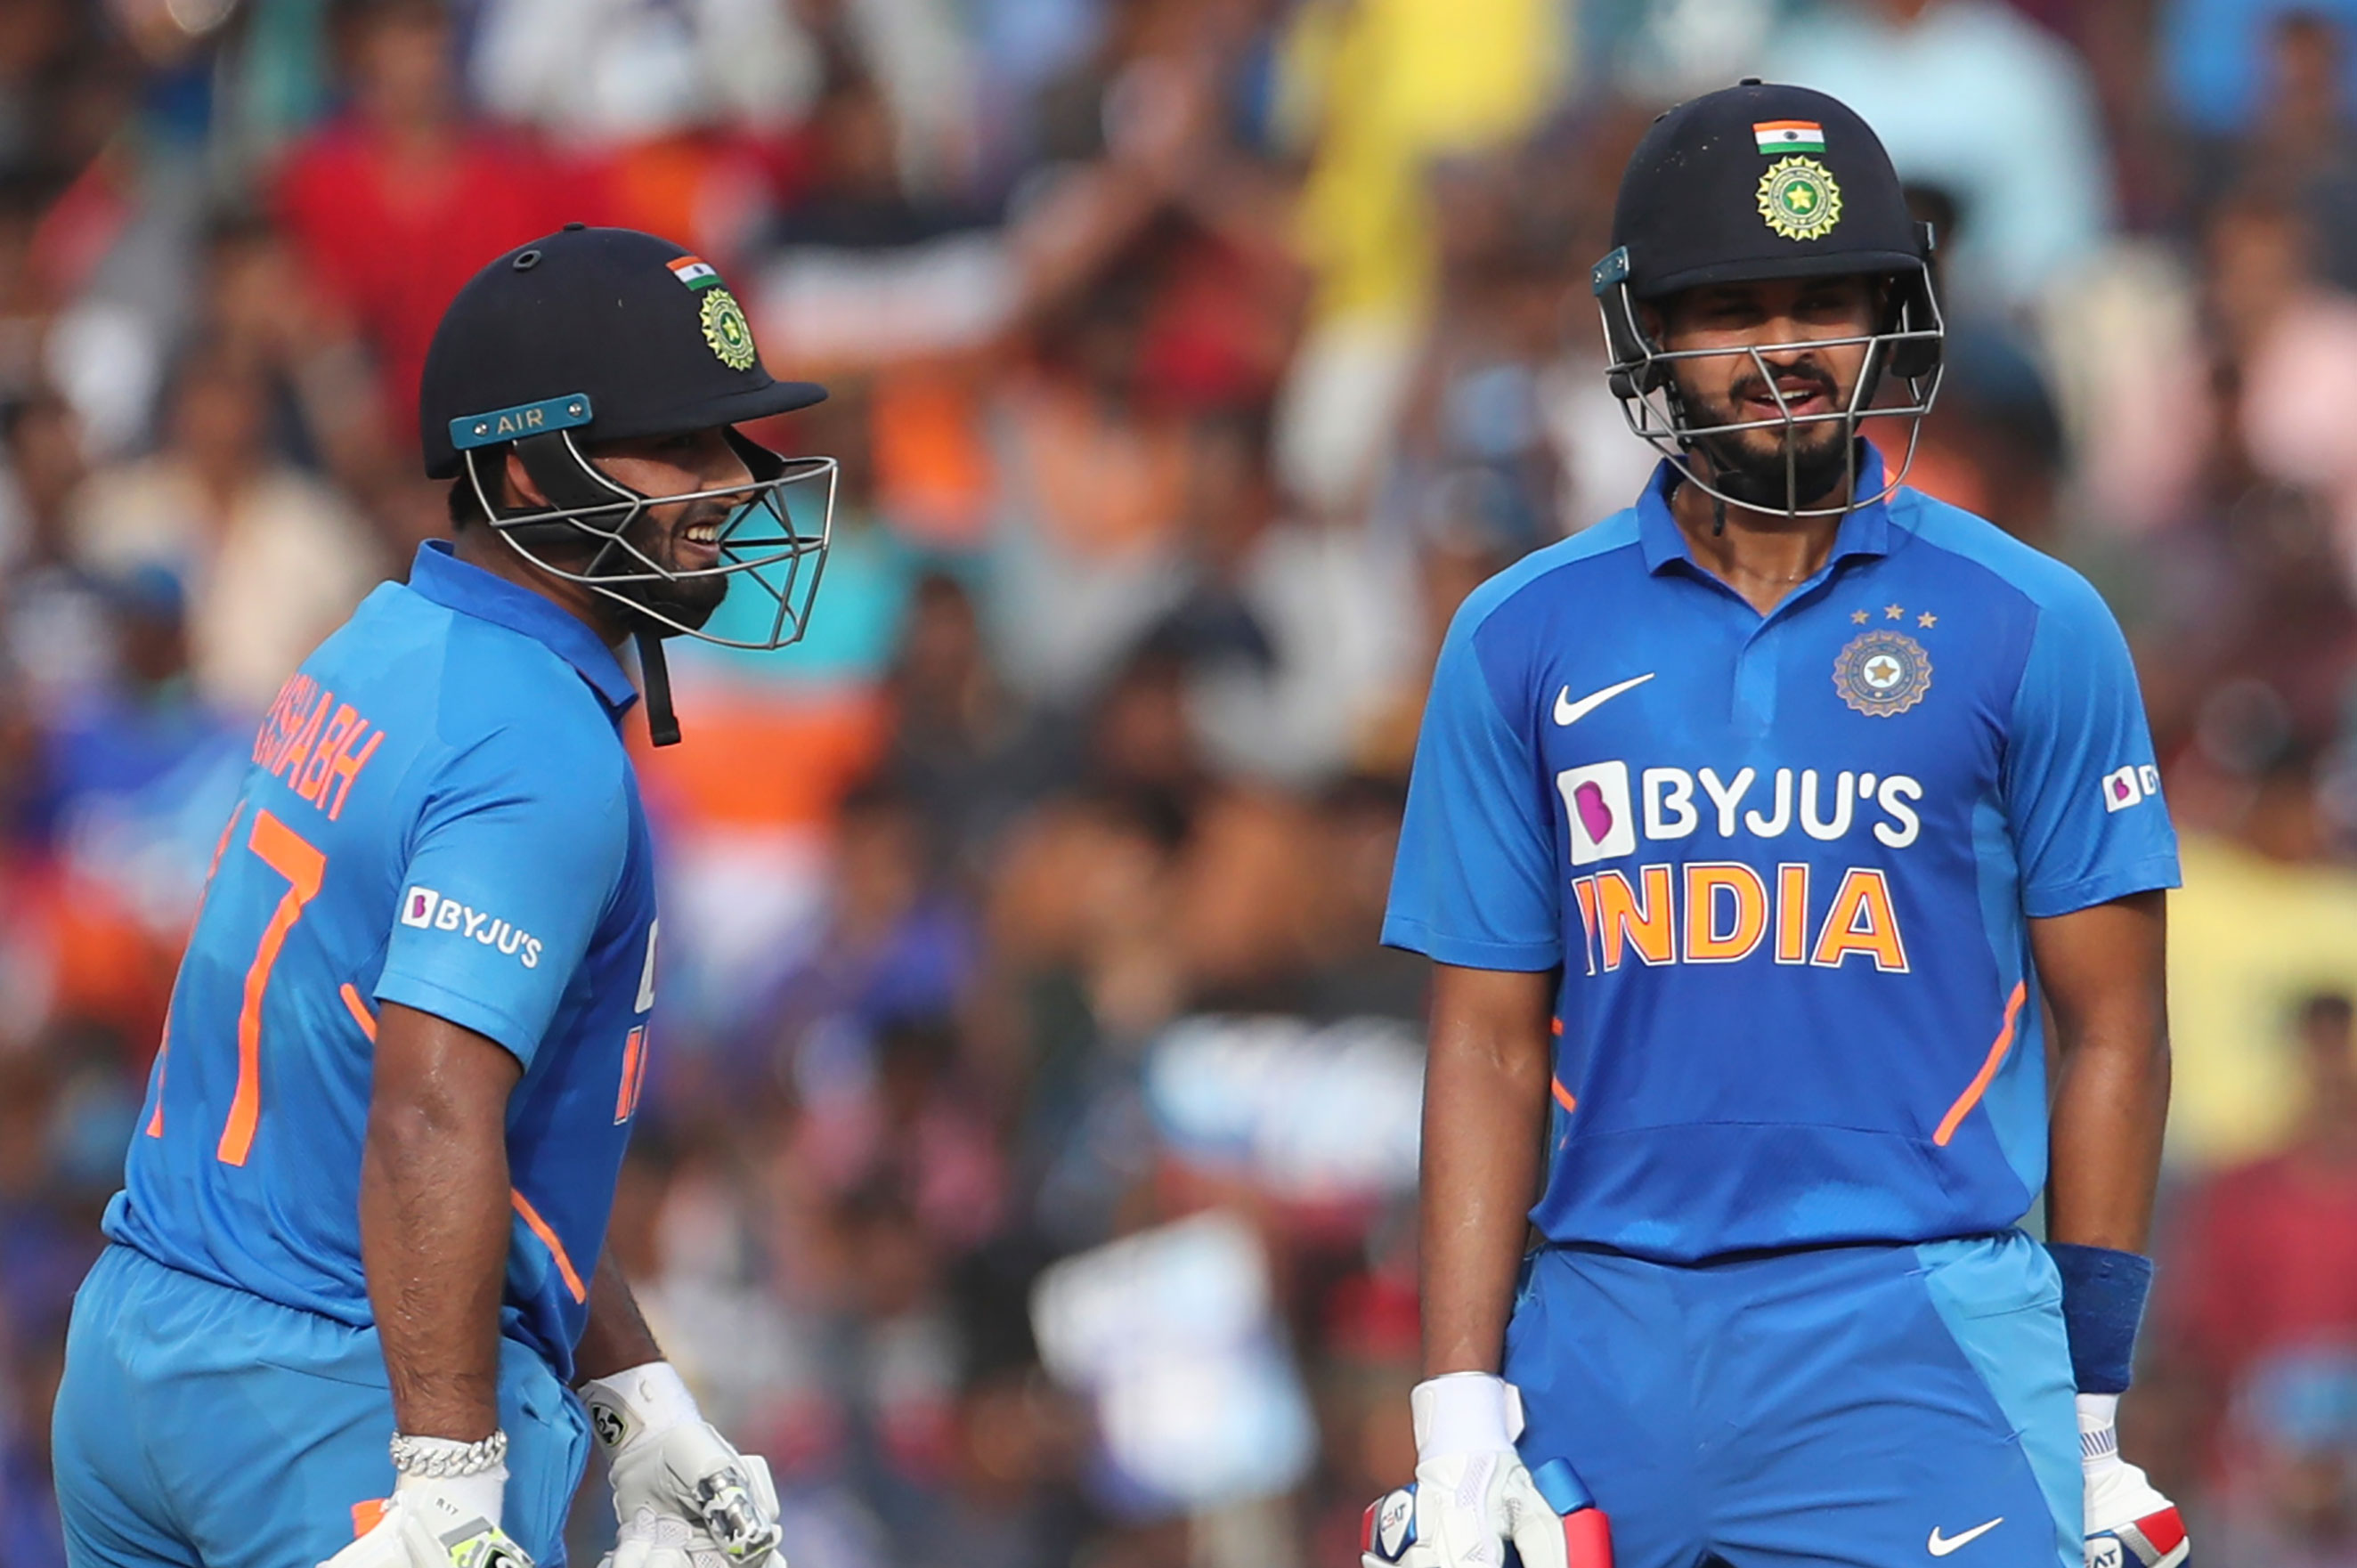 Shreyas Iyer (right) and Rishabh Pant during the first ODI against the West Indies in Chennai.